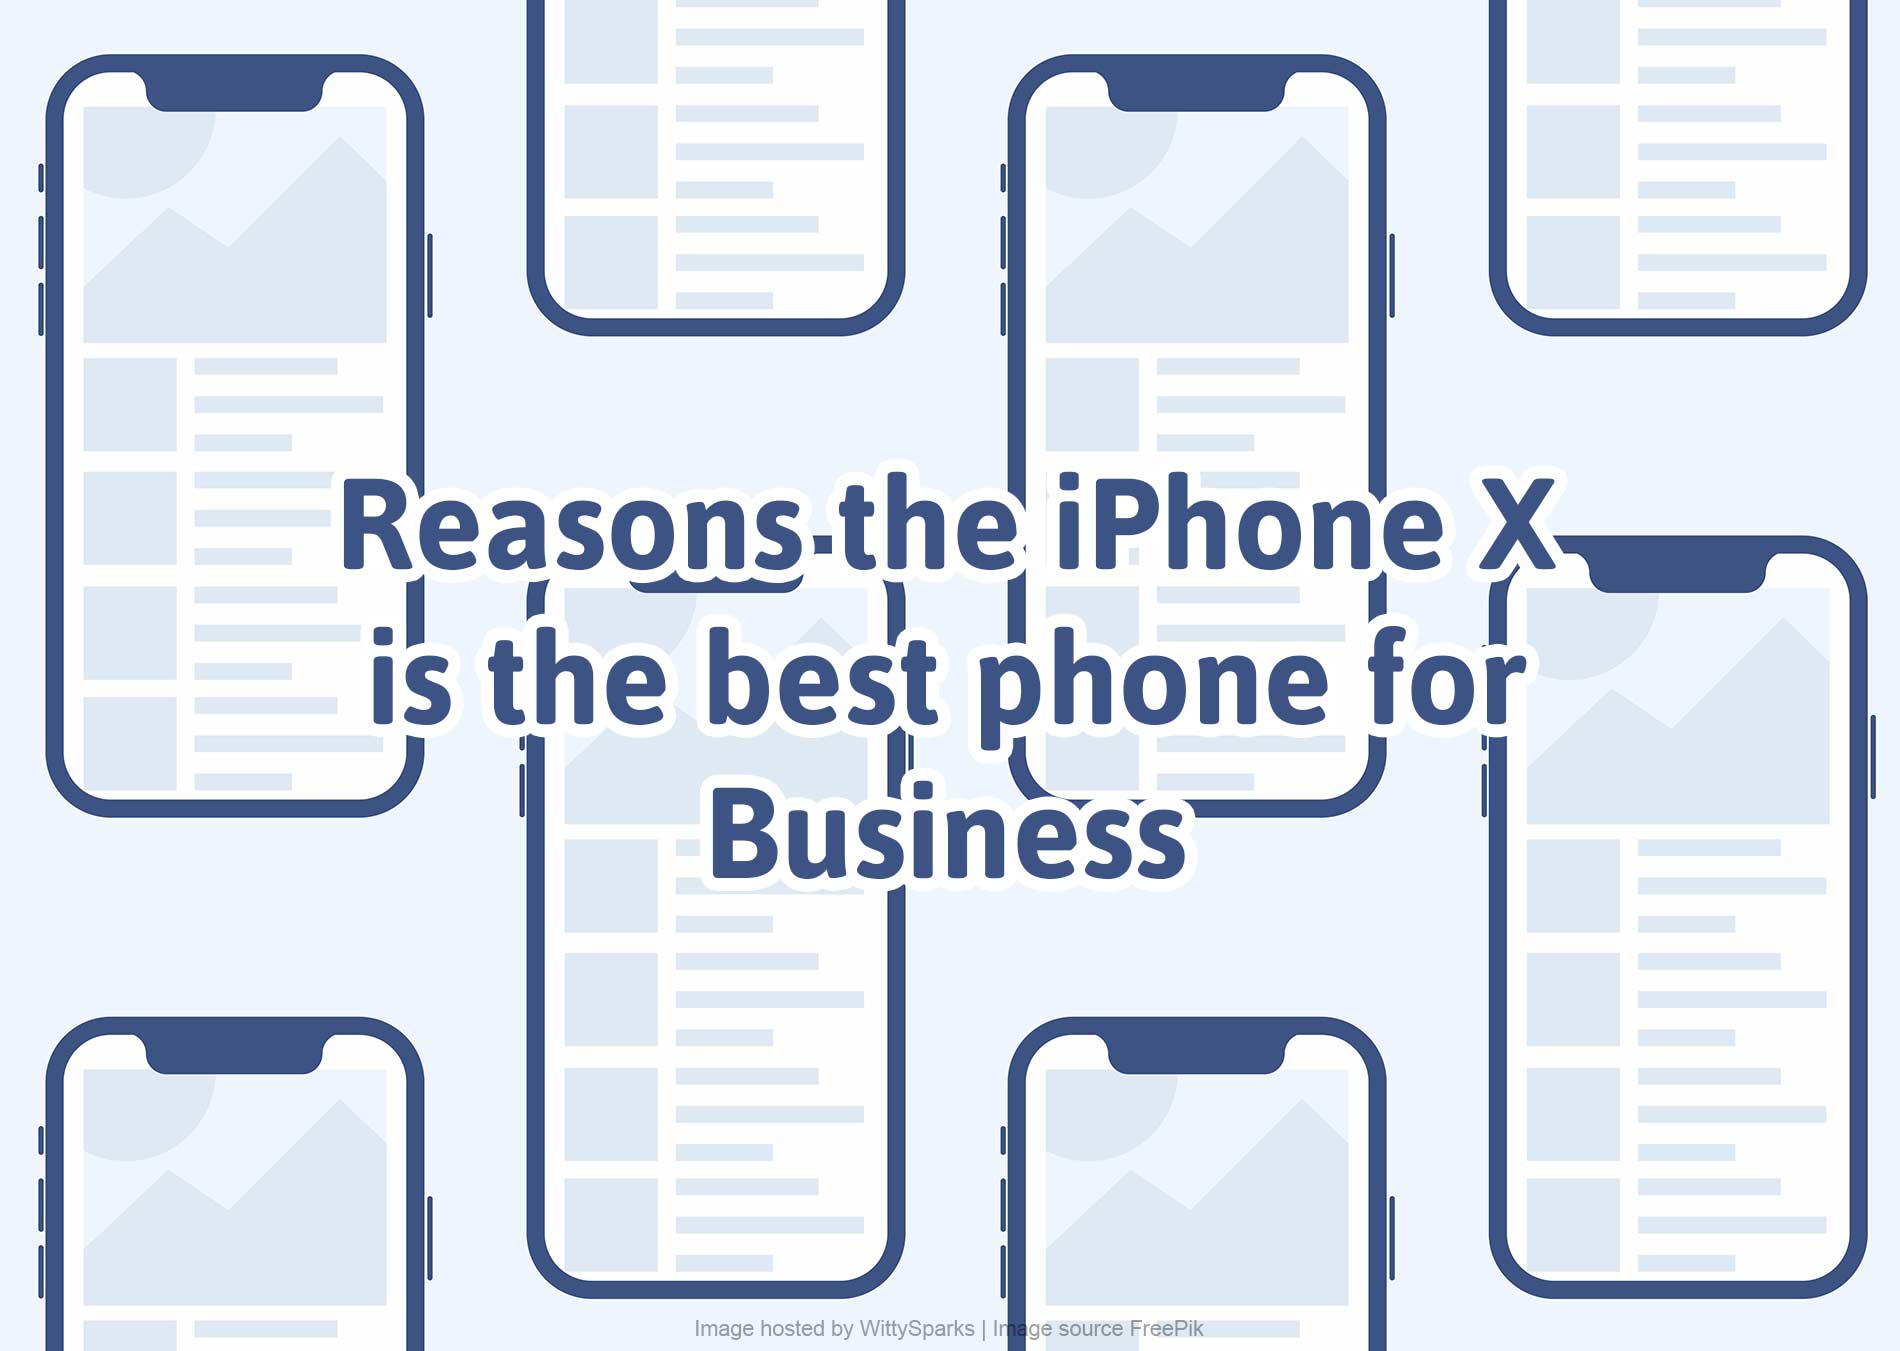 iPhone is the best phone for business